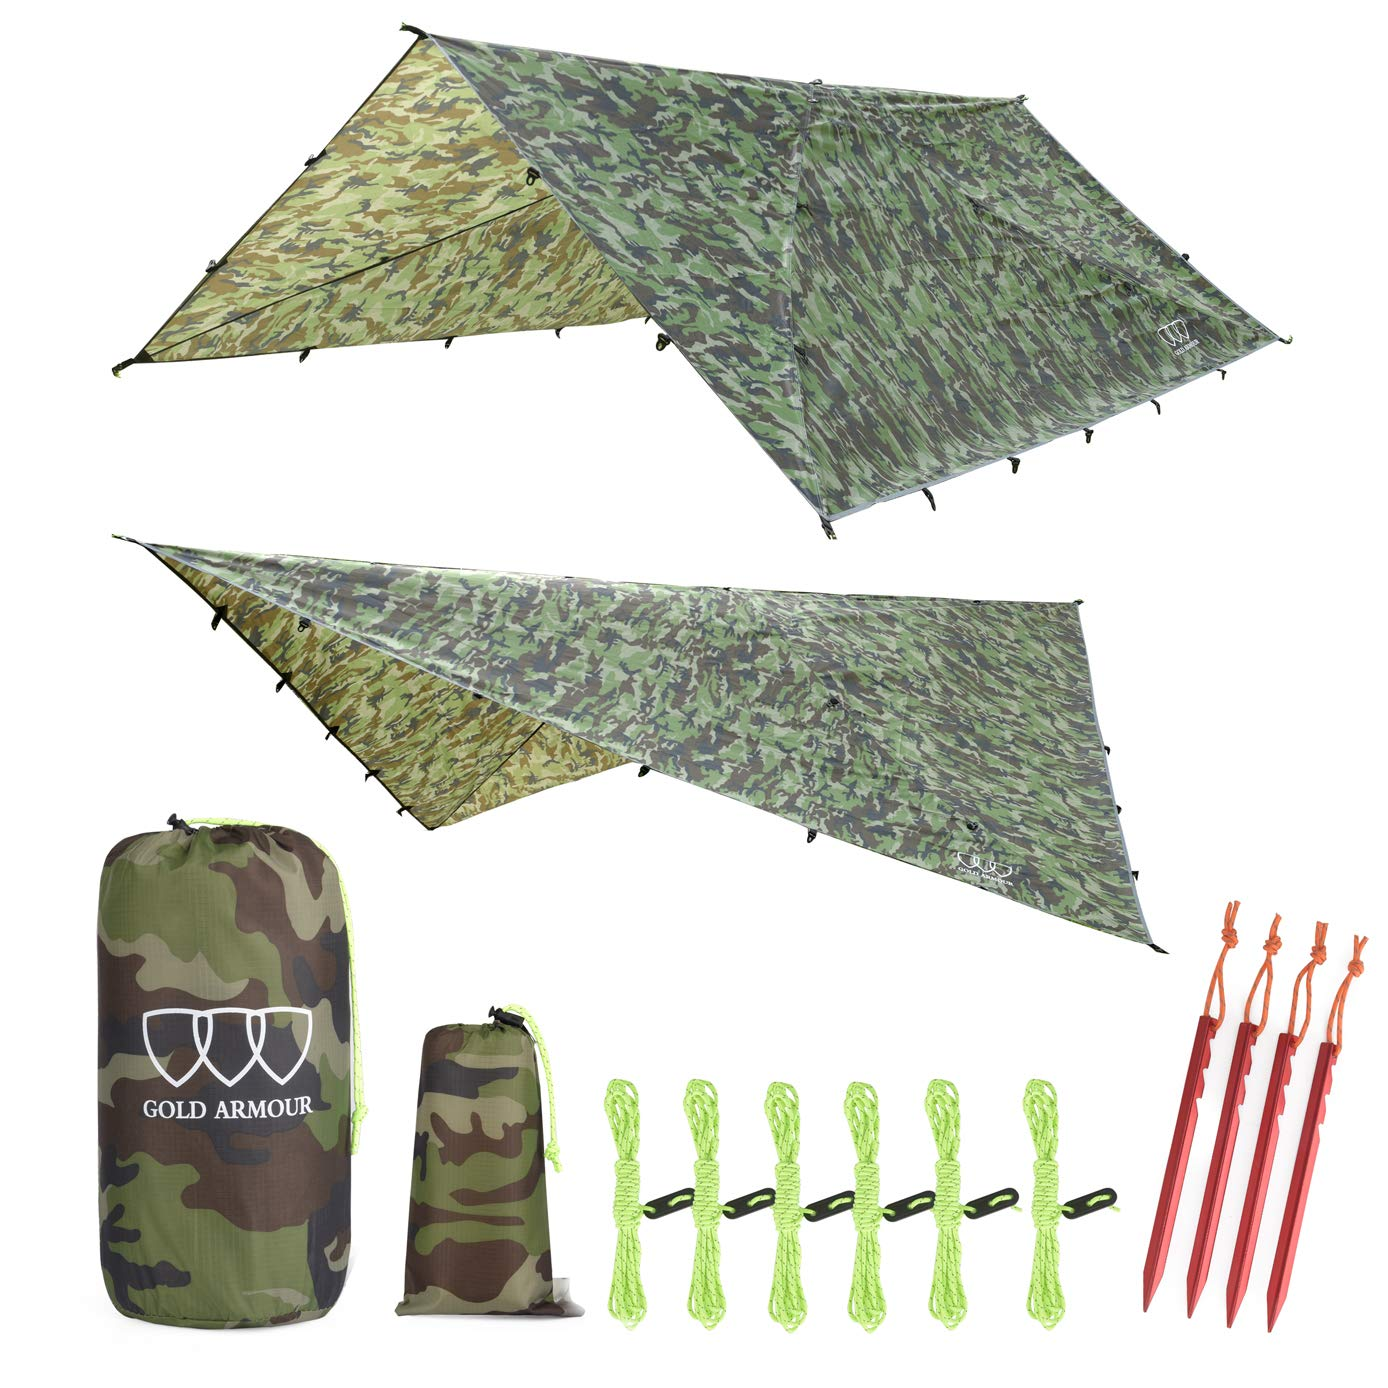 12ft Extra Large Tarp Hammock Waterproof Rain Fly Tarp 185in Centerline - Lightweight Ripstop Fabric - Stakes Included - Survival Gear Backpacking Camping Accessories - Multiple Colors (Camouflage) by Gold Armour